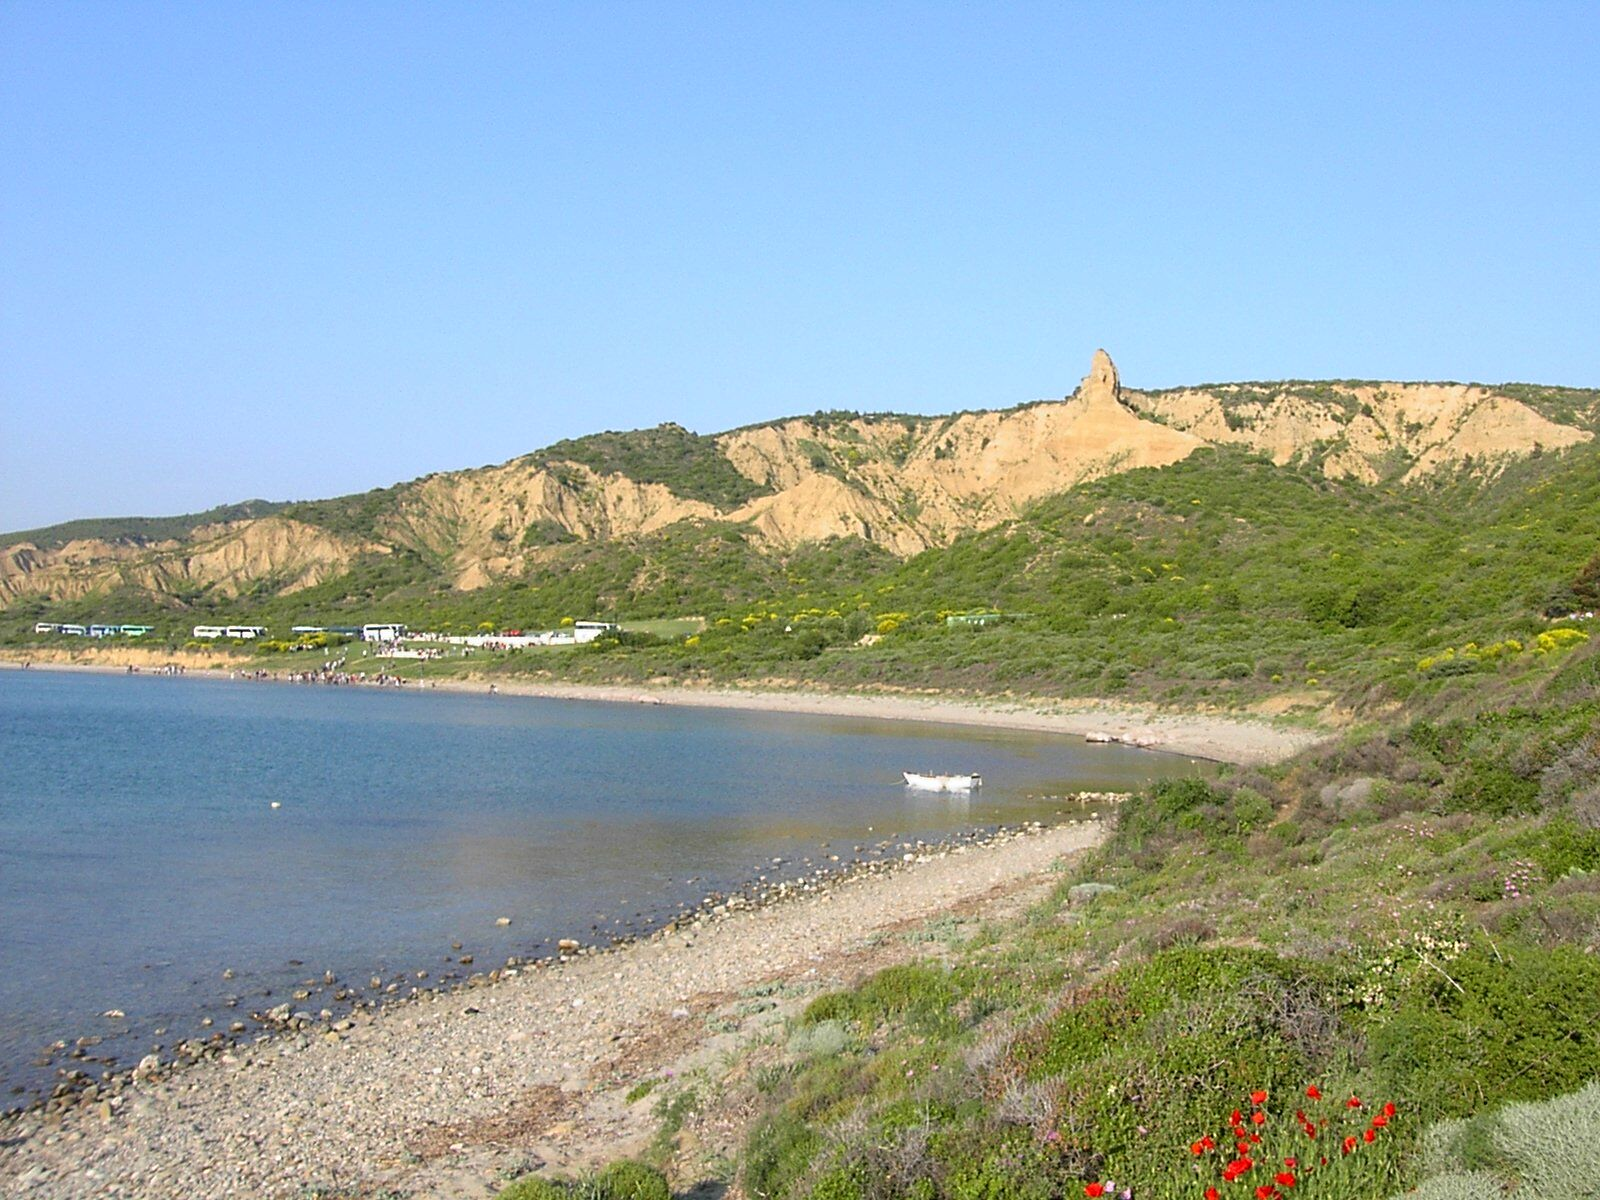 http://upload.wikimedia.org/wikipedia/commons/d/da/Ac.gallipoli1.jpg